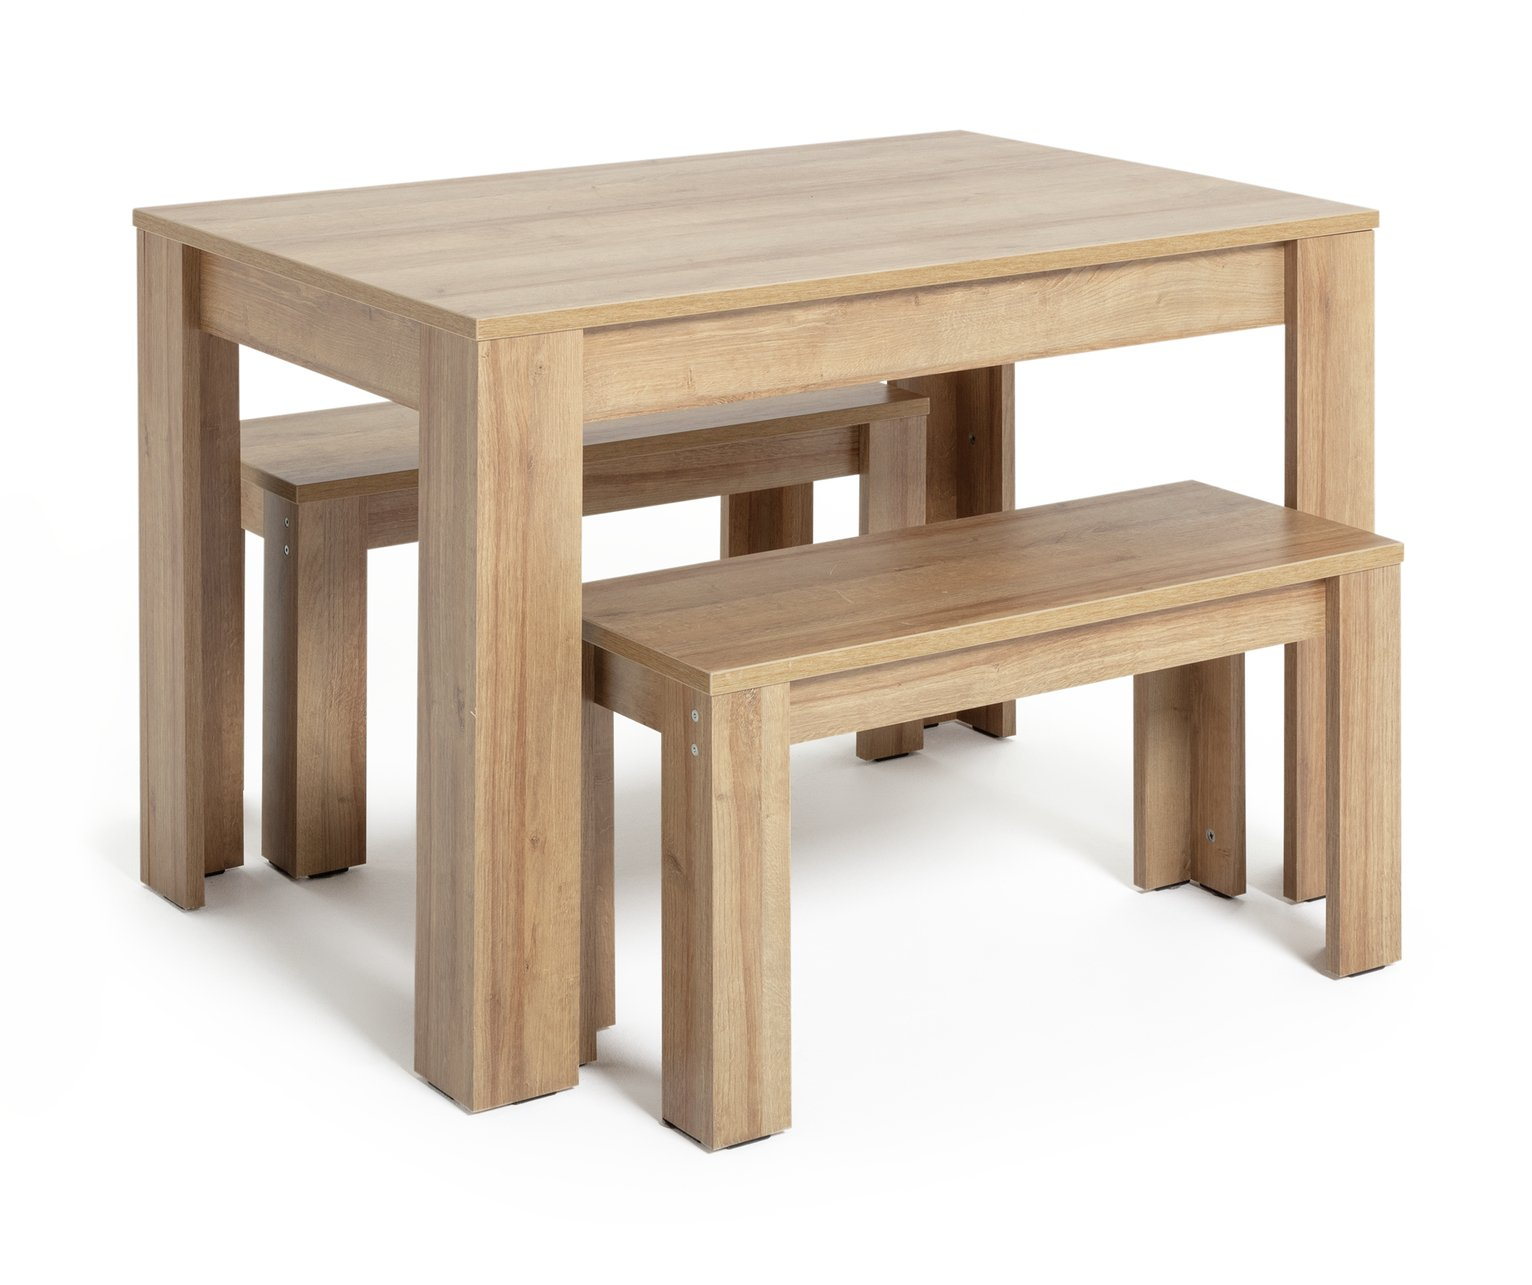 Argos Home Miami Oak Effect Table and Bench Set review